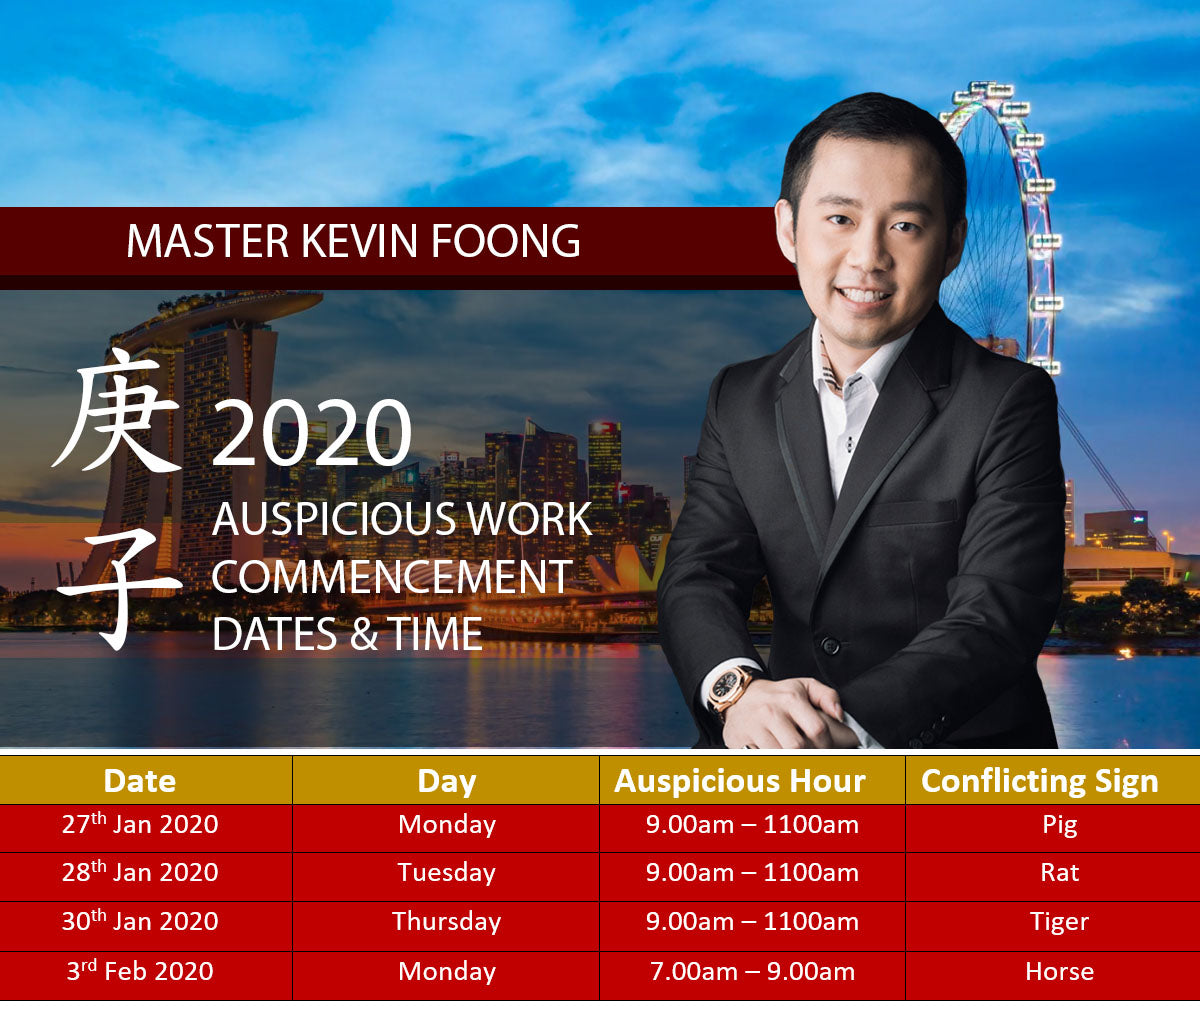 Auspicious Date and Time For Work Commencement in 2020